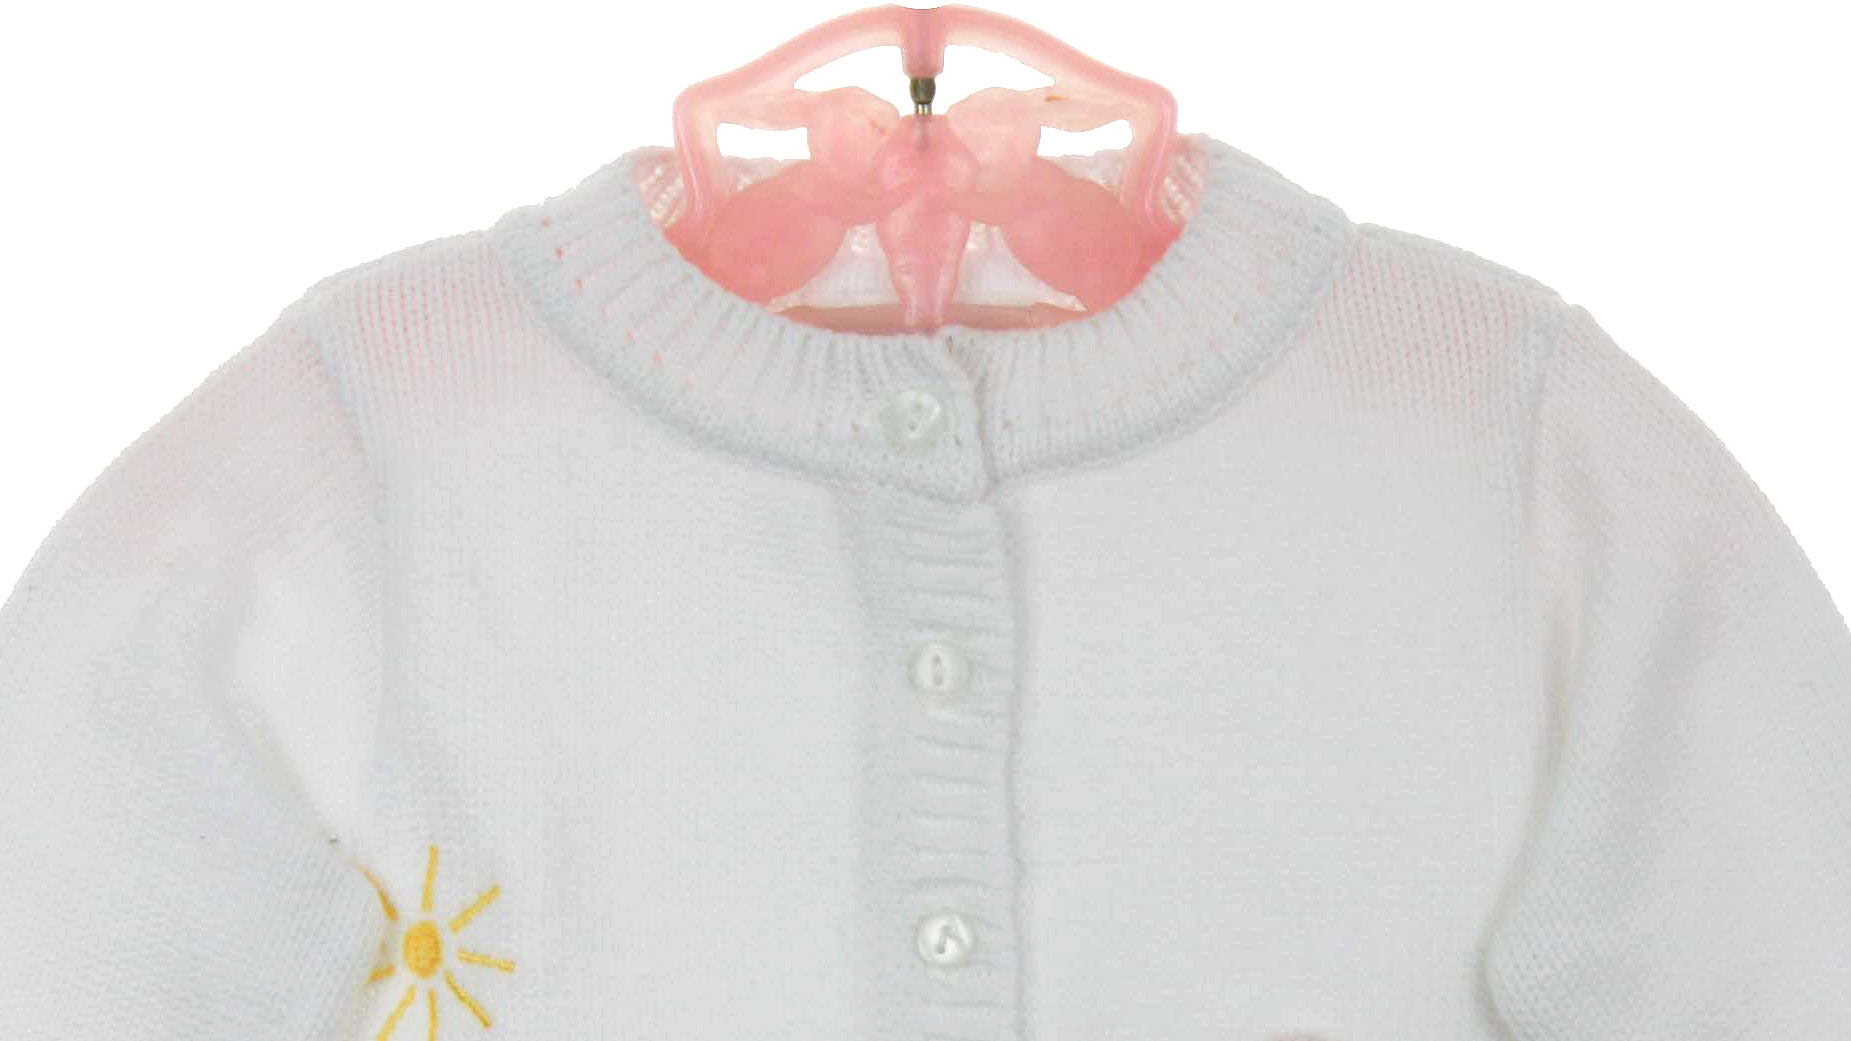 NEW Sarah Louise White Cotton Sweater with Embroidered Bunnies. SW1408   50.00. Size  sold out 413443655